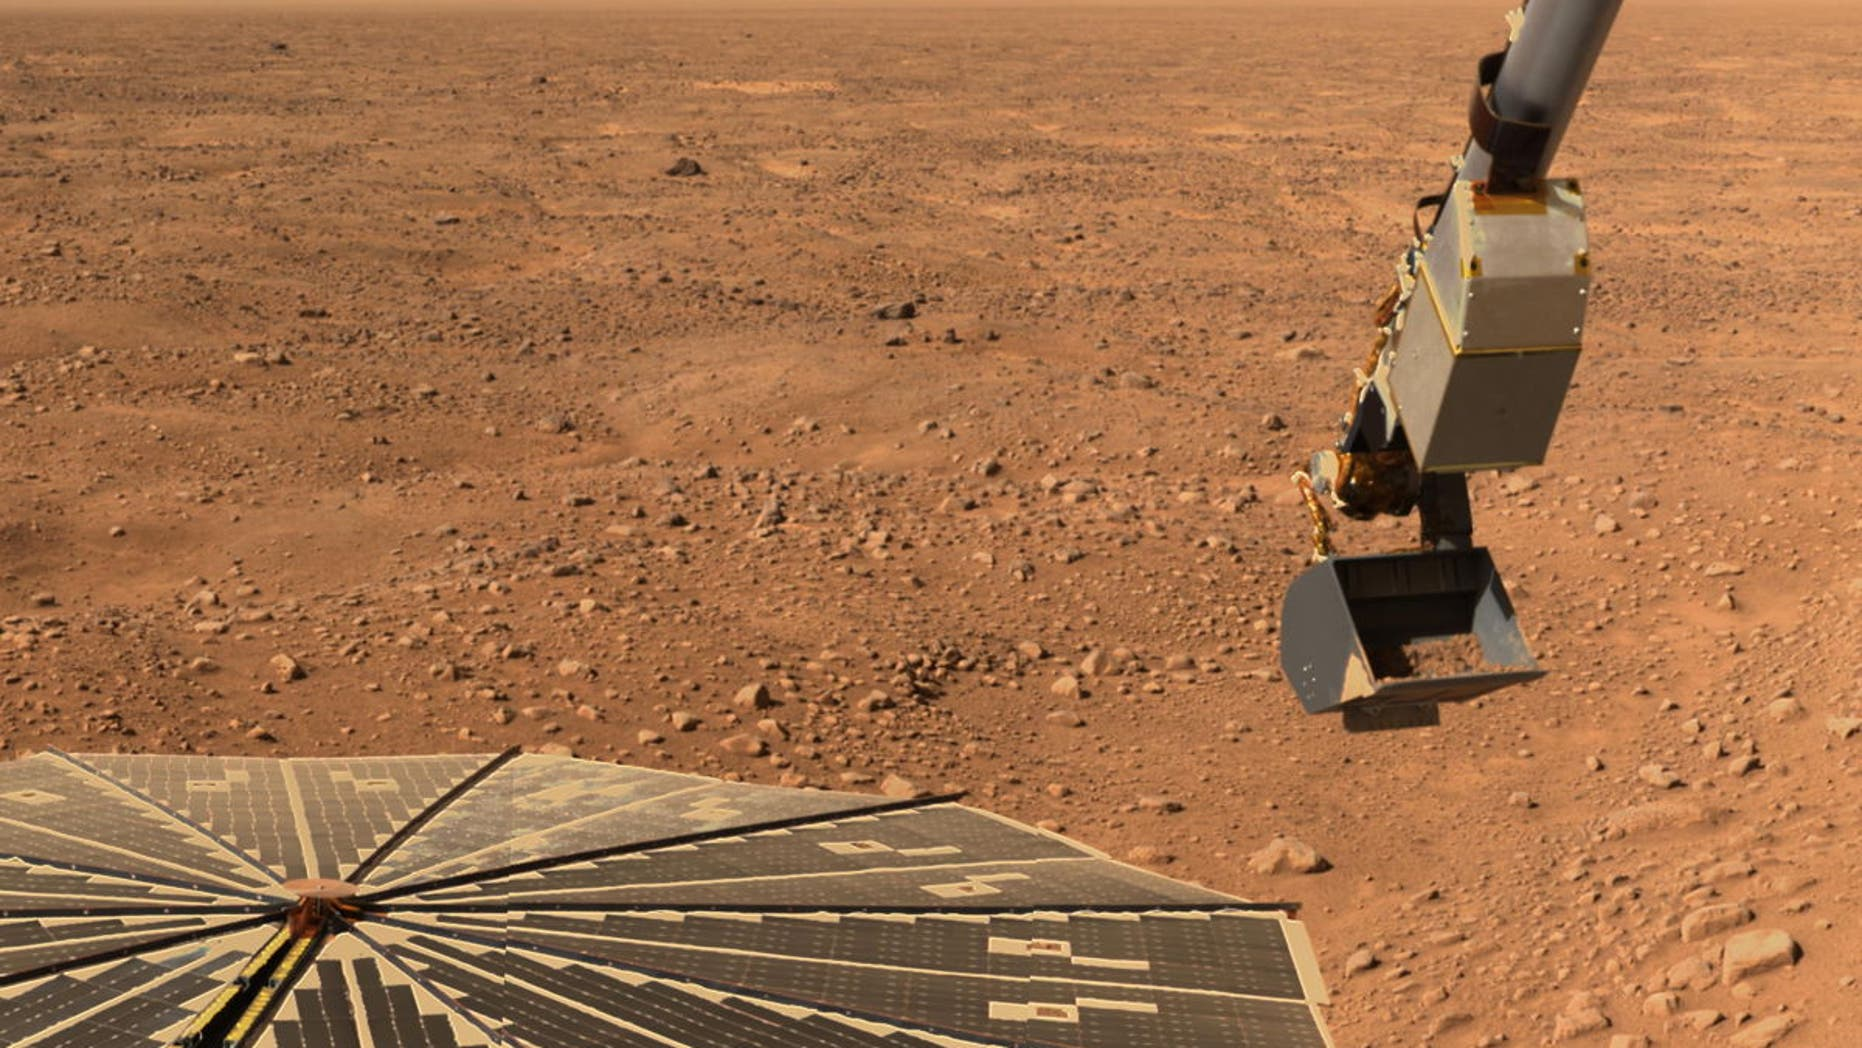 NASA's Phoenix Mars lander detected perchlorates in the Martian arctic's ice-rich soil in 2008.